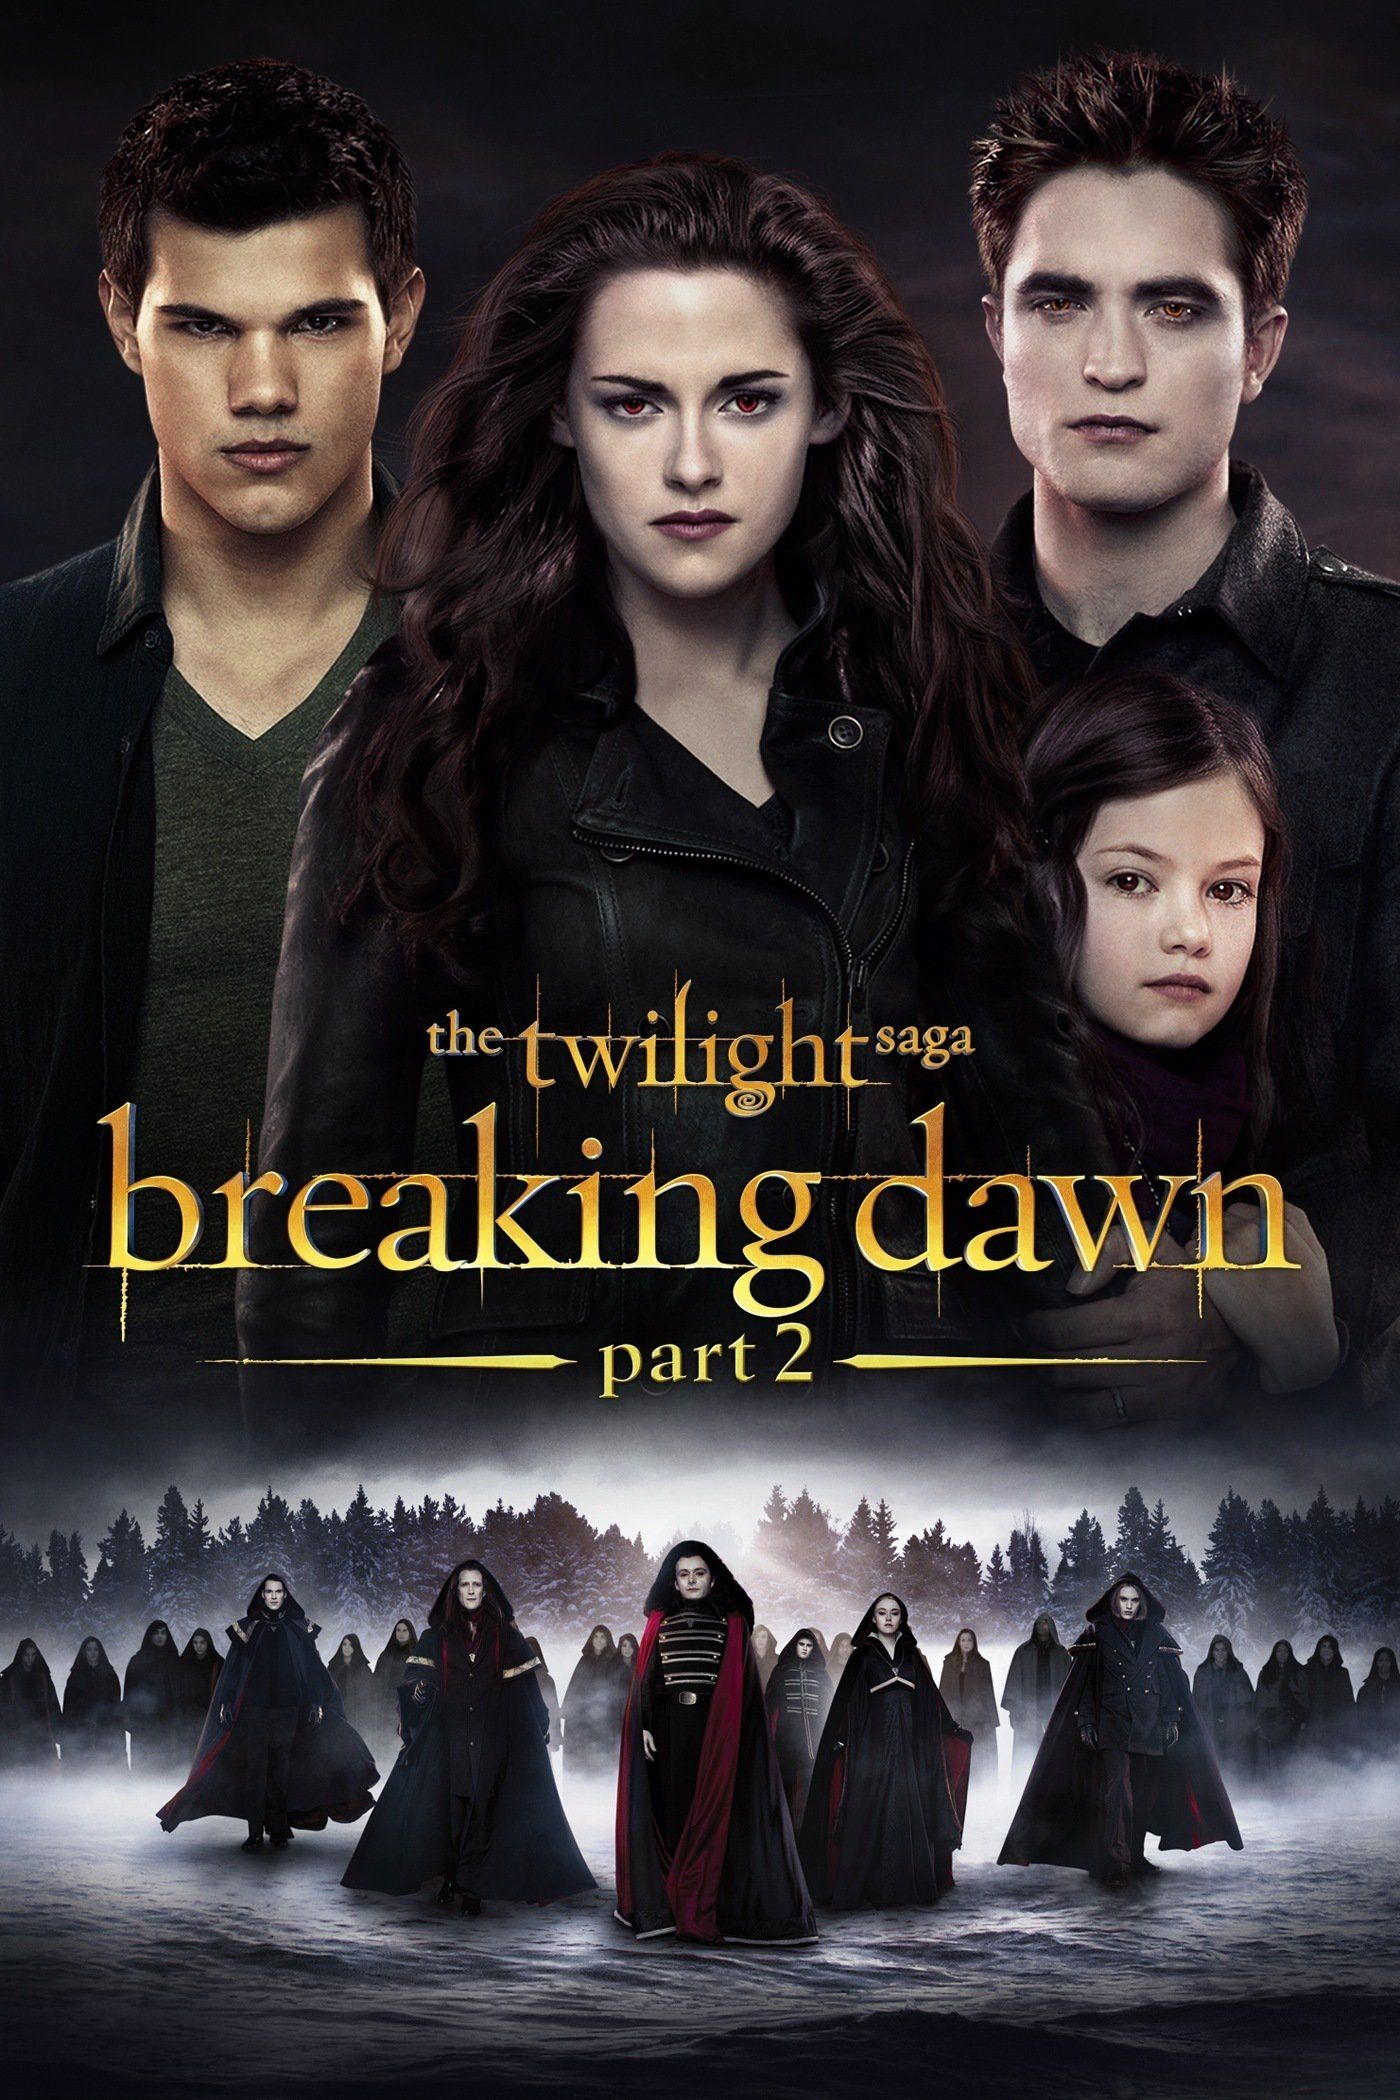 Pin by Movie Posters on Movie Posters Twilight breaking